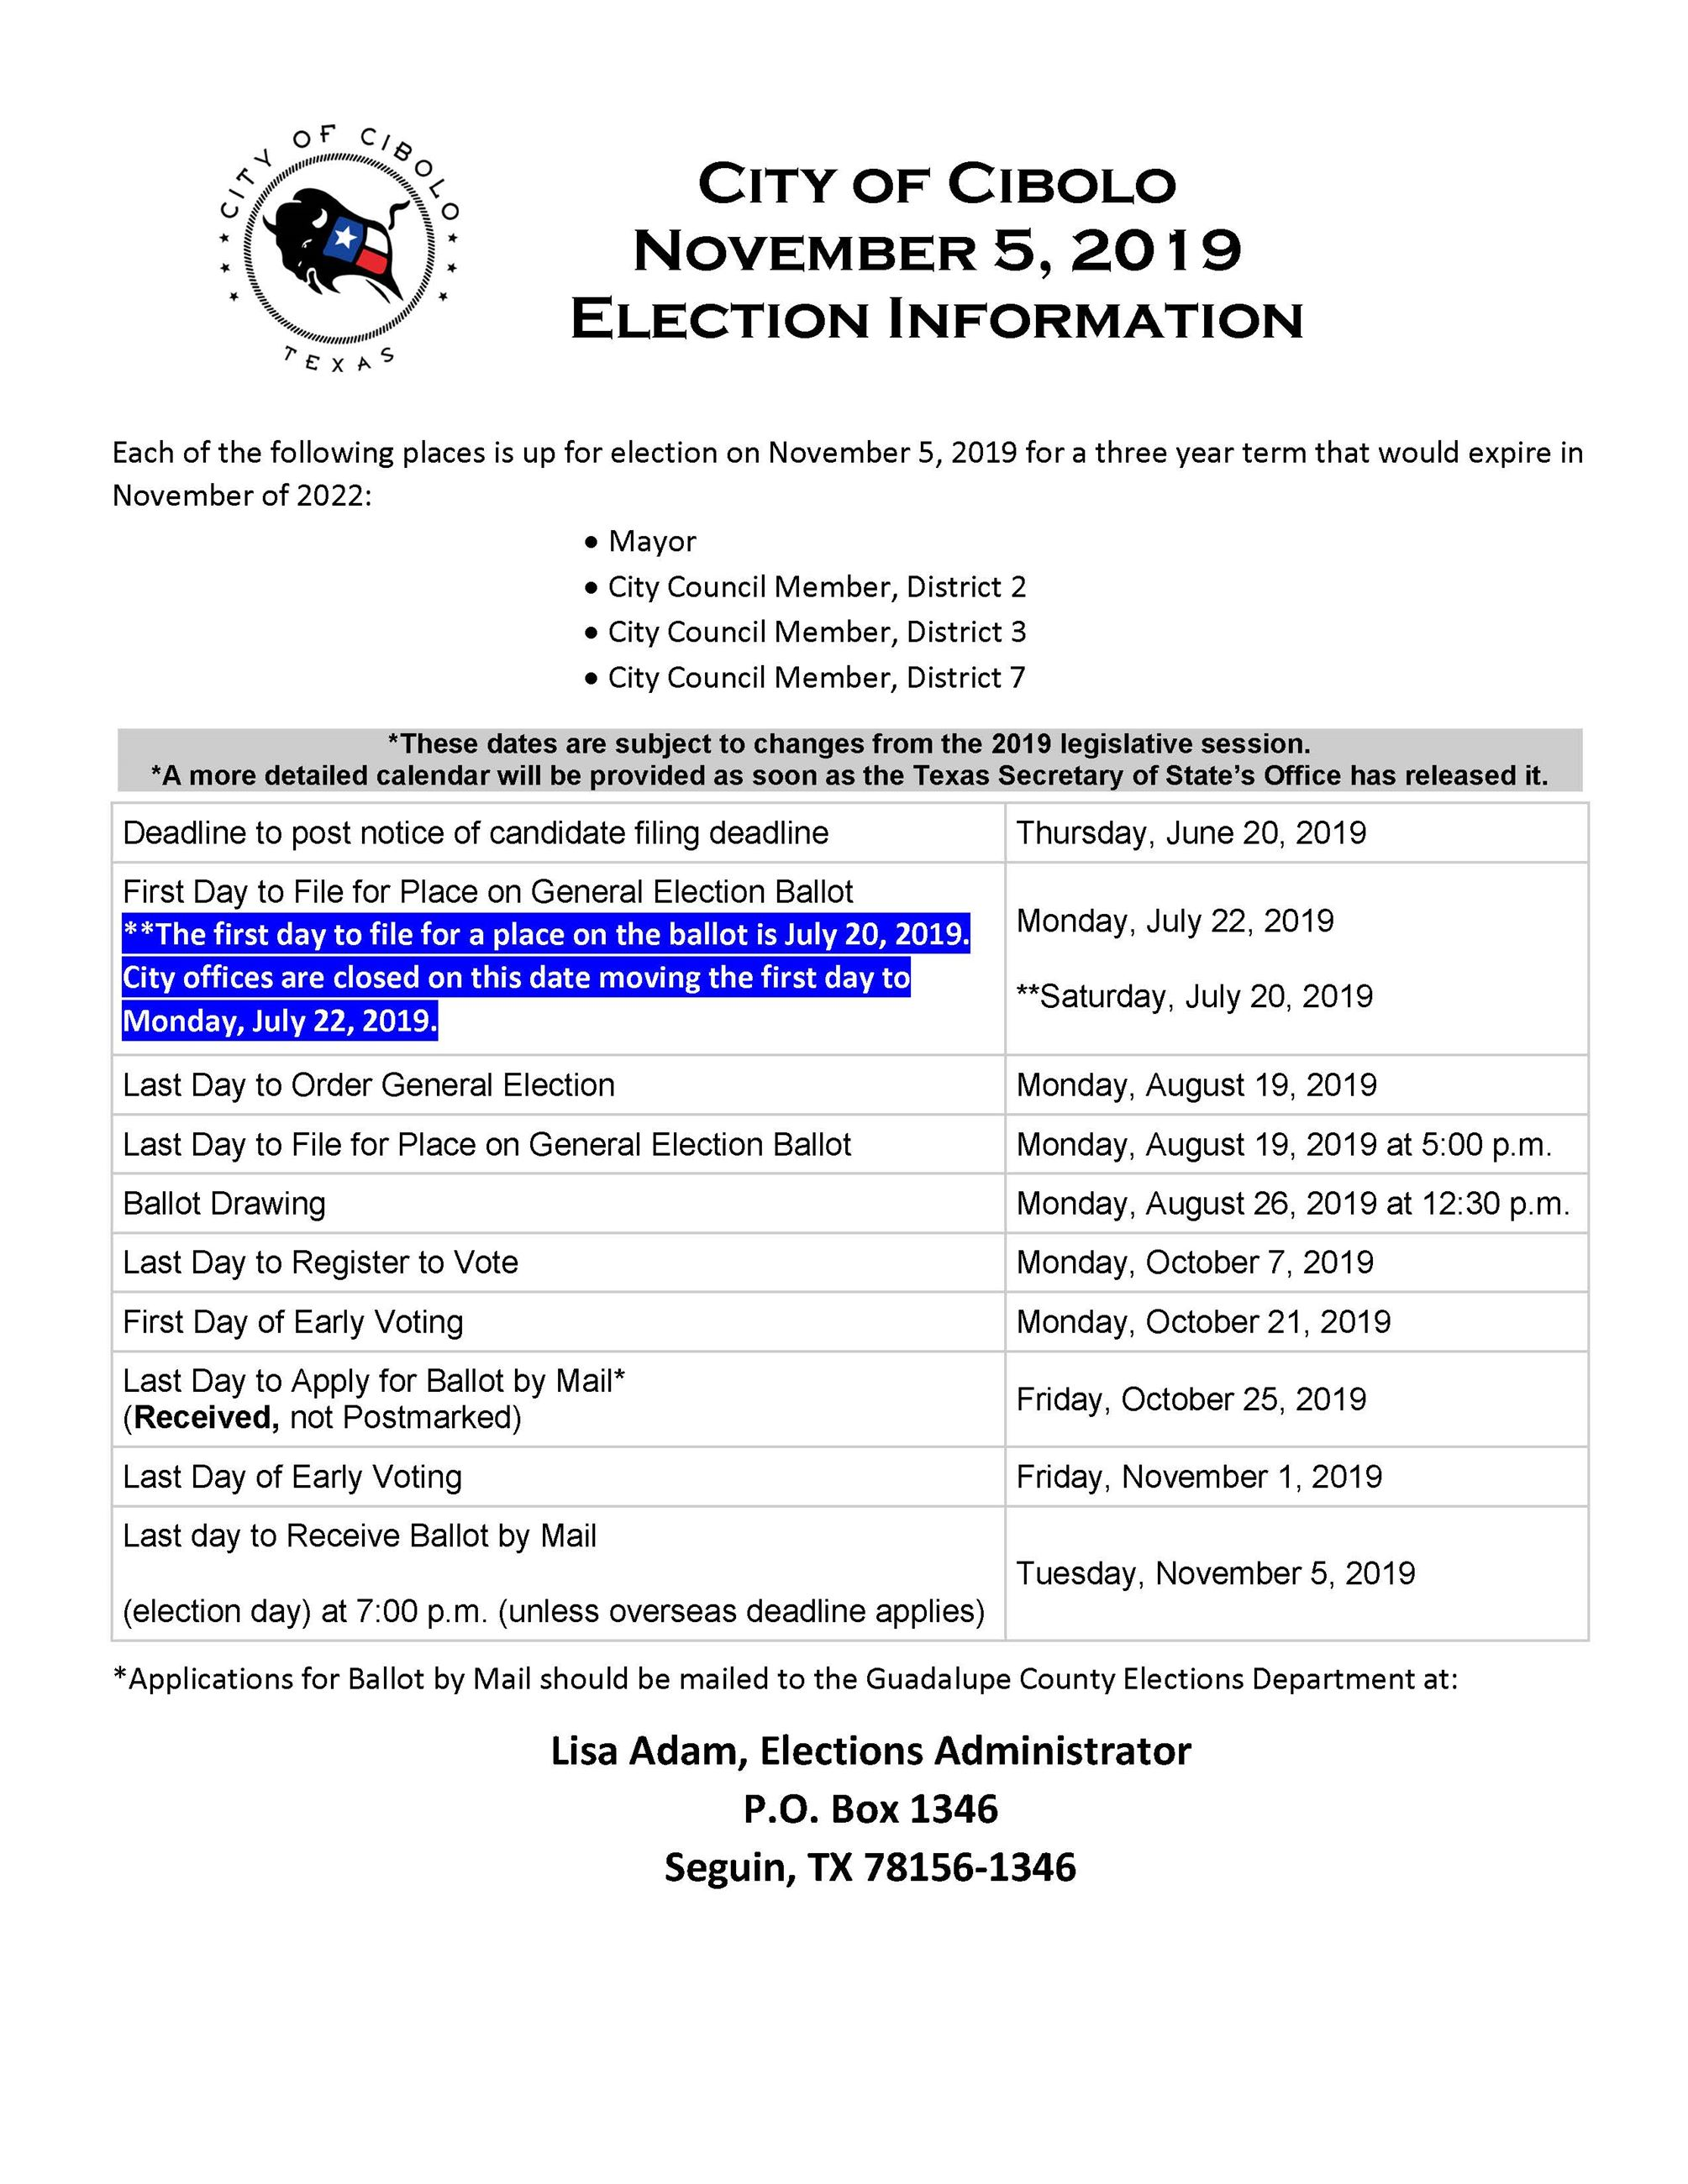 Important Dates for Cibolo Nov 2019 Elections